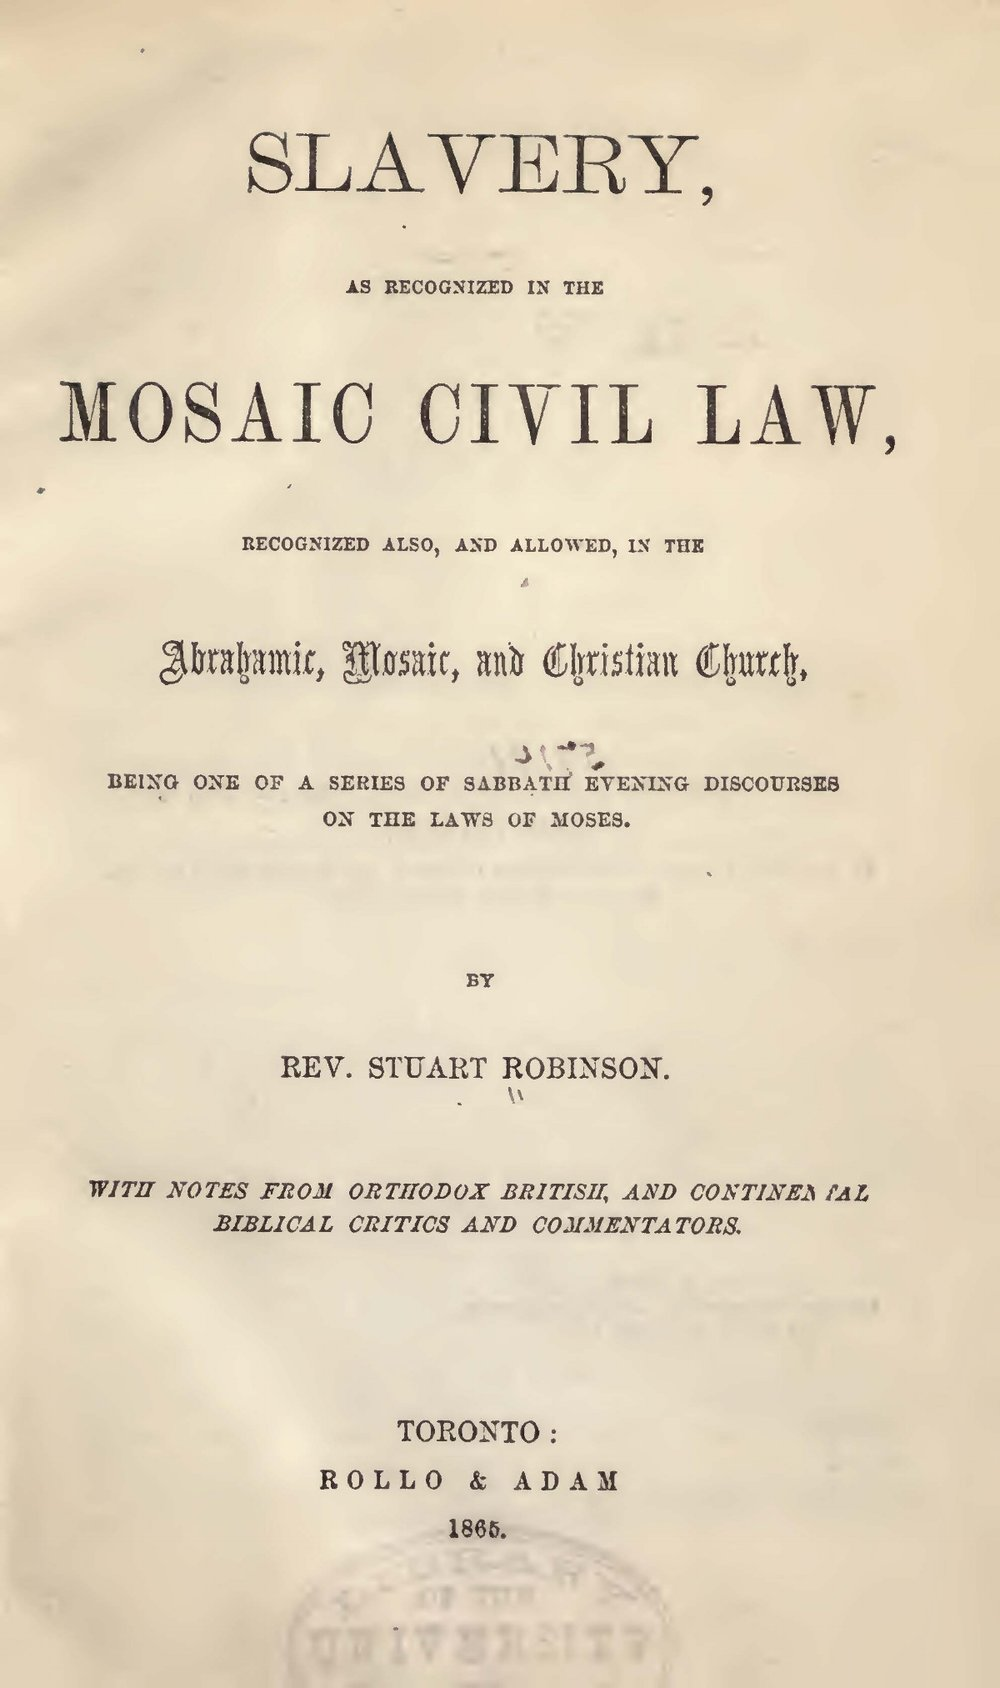 Robinson, Stuart, Slavery as Recognized in the Mosaic Civil Law Title Page.jpg